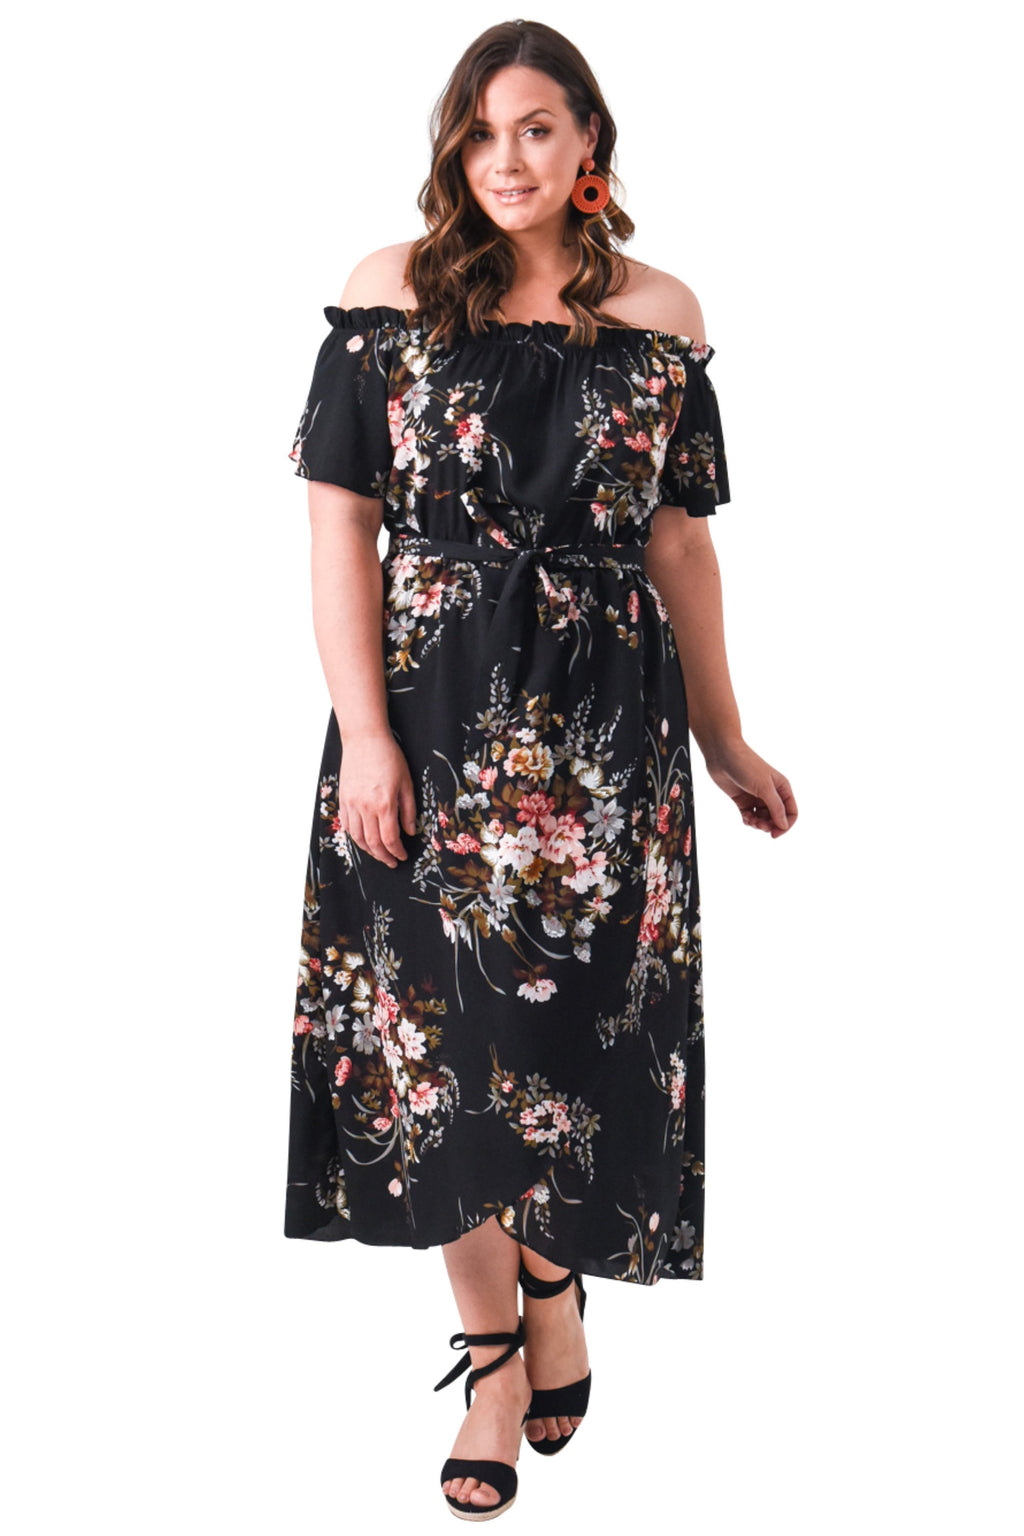 plus size Off Shoulder Dress XL / AUS 14 - 16 / Floral Black Kyra Dress